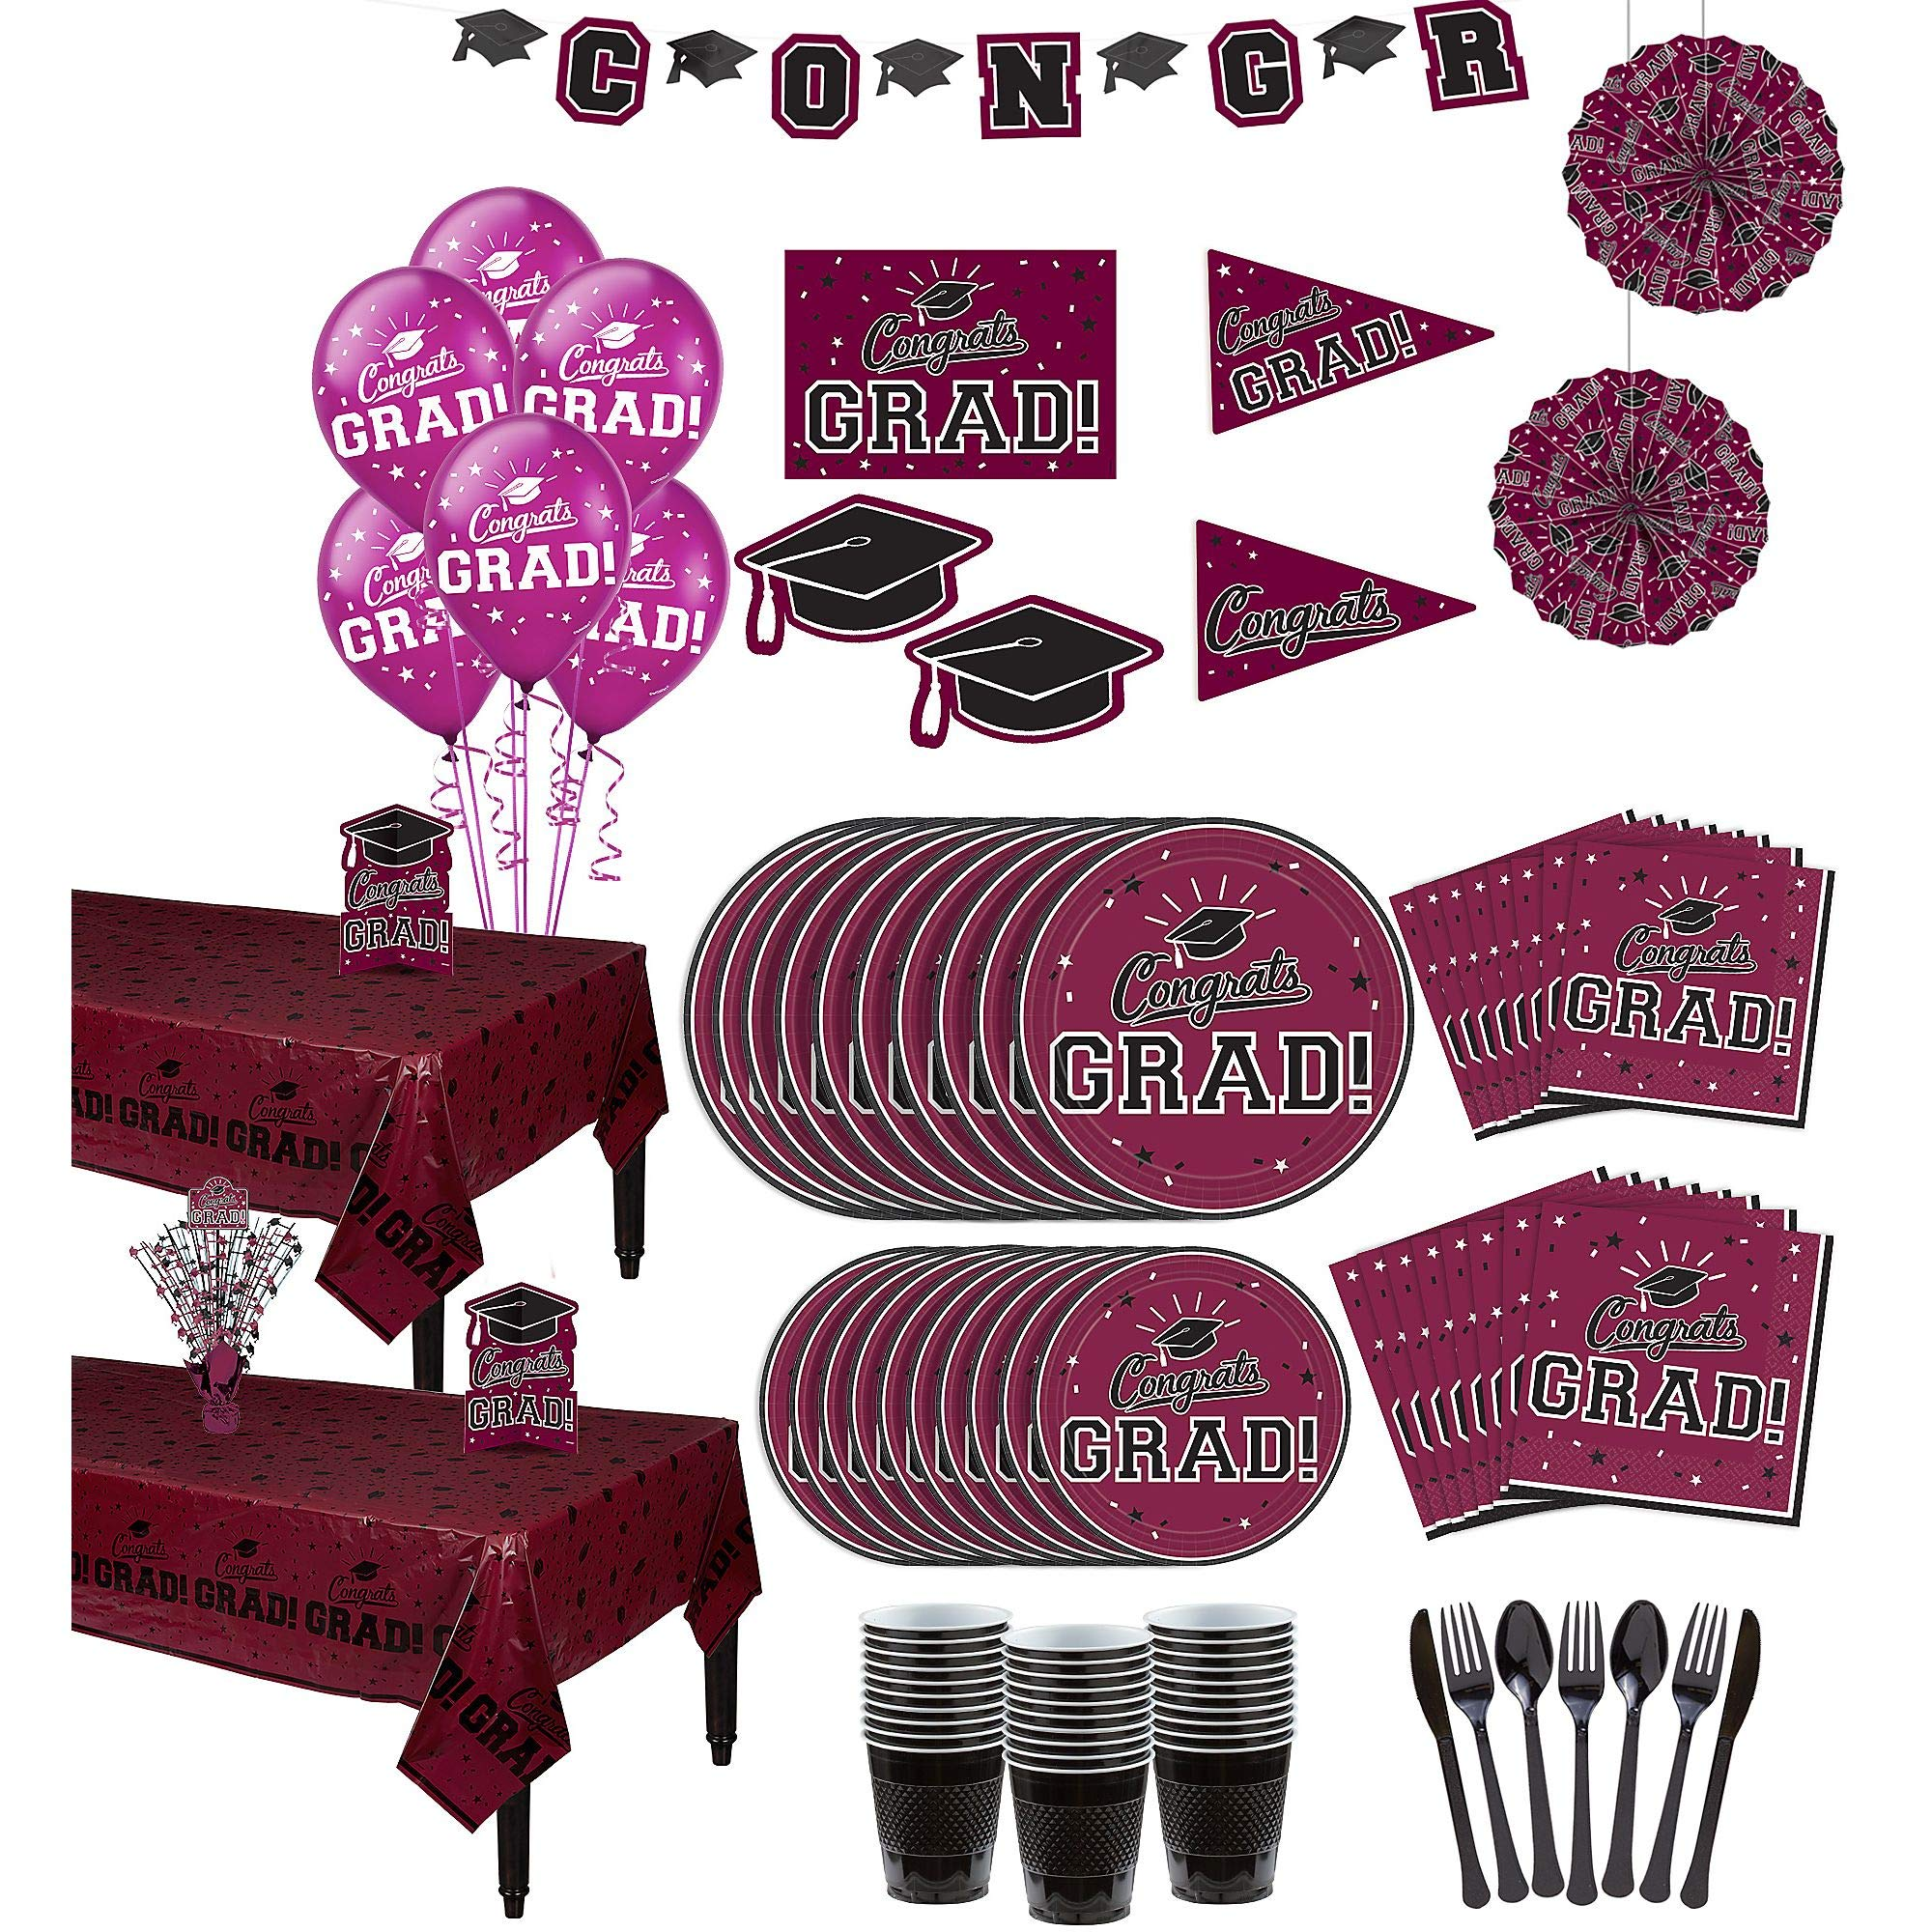 Party City Berry Congrats Grad 2019 Graduation Party Supplies for 36 Guests with Banner, Tableware and Balloons